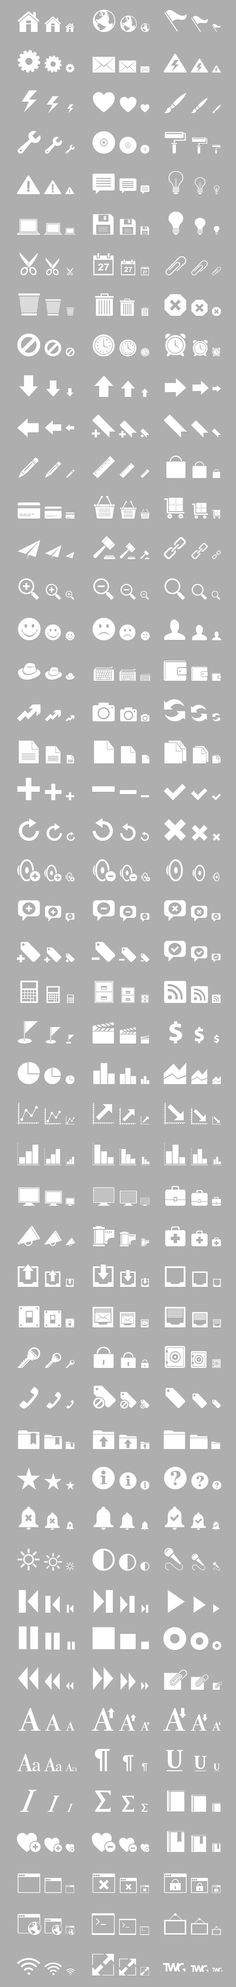 #Awesome #iconset like share and repin!